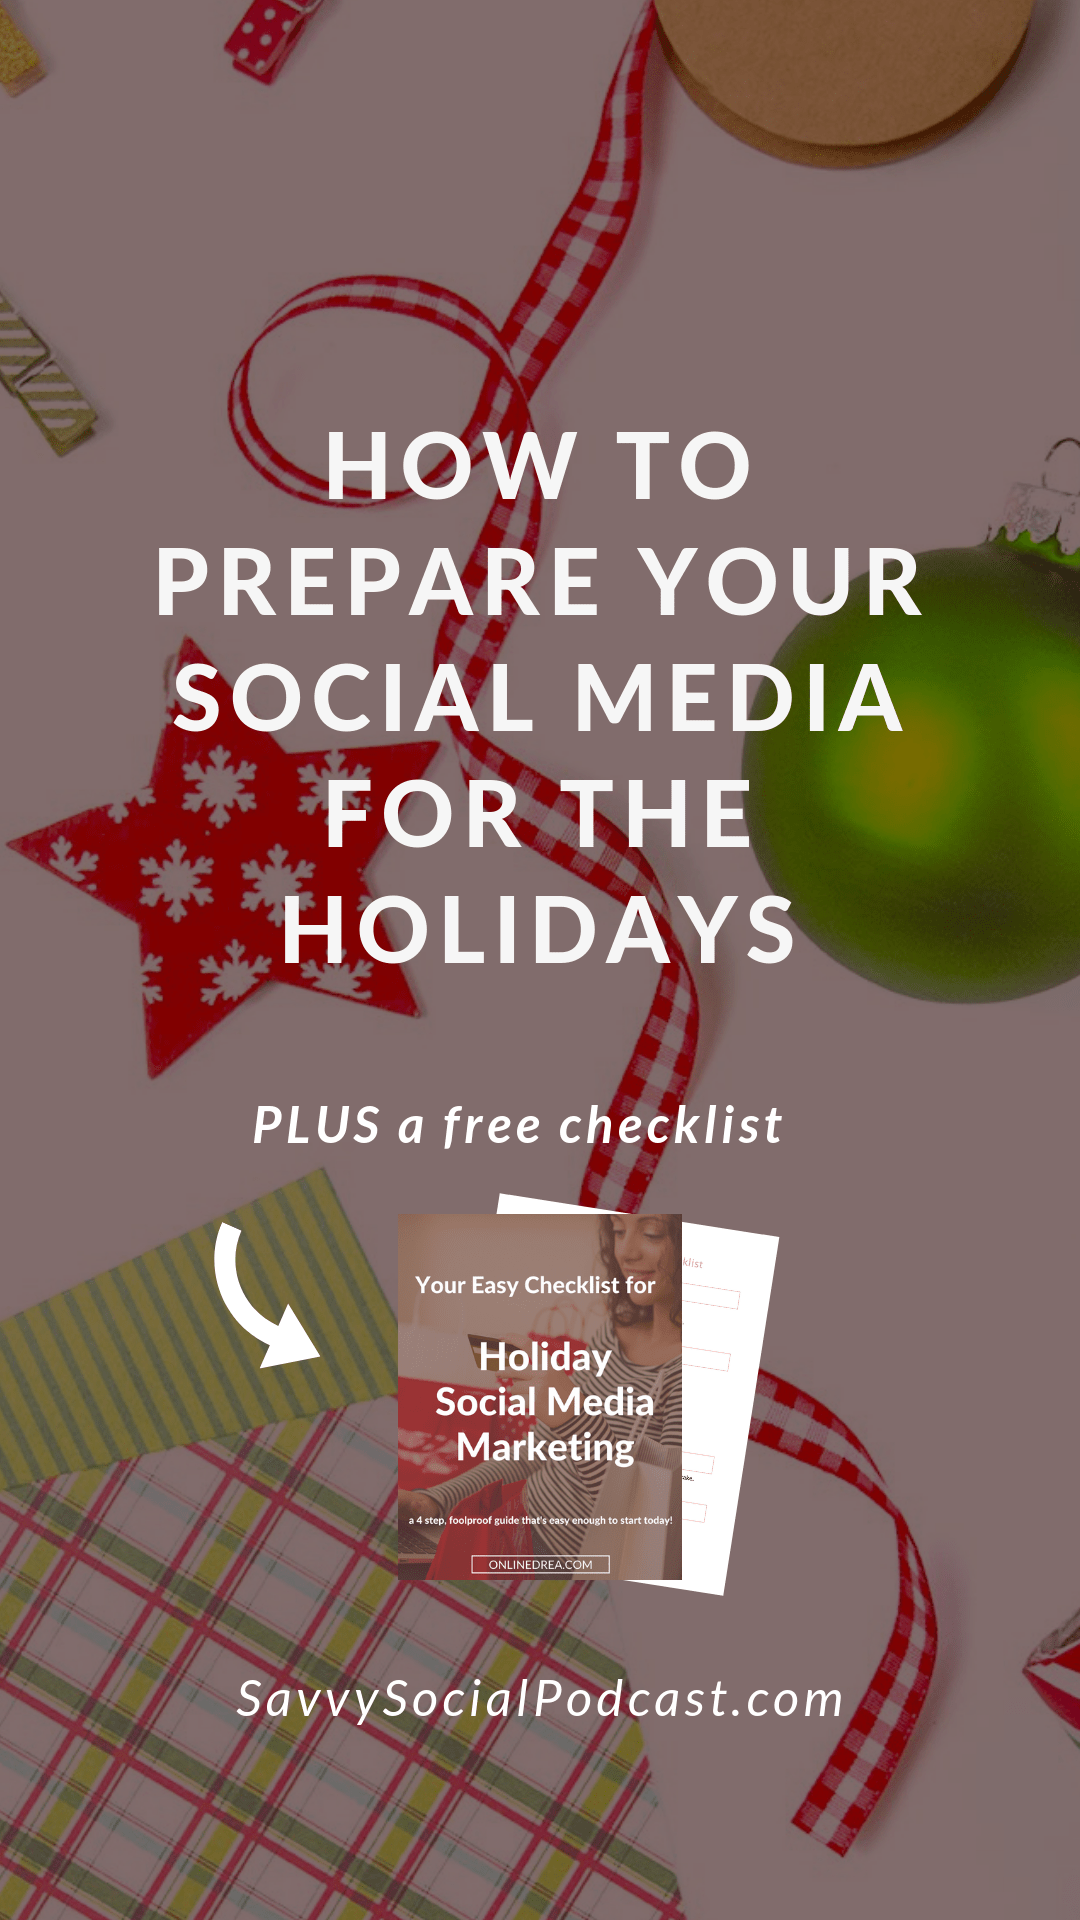 How to Prepare Your Social Media for the Holidays